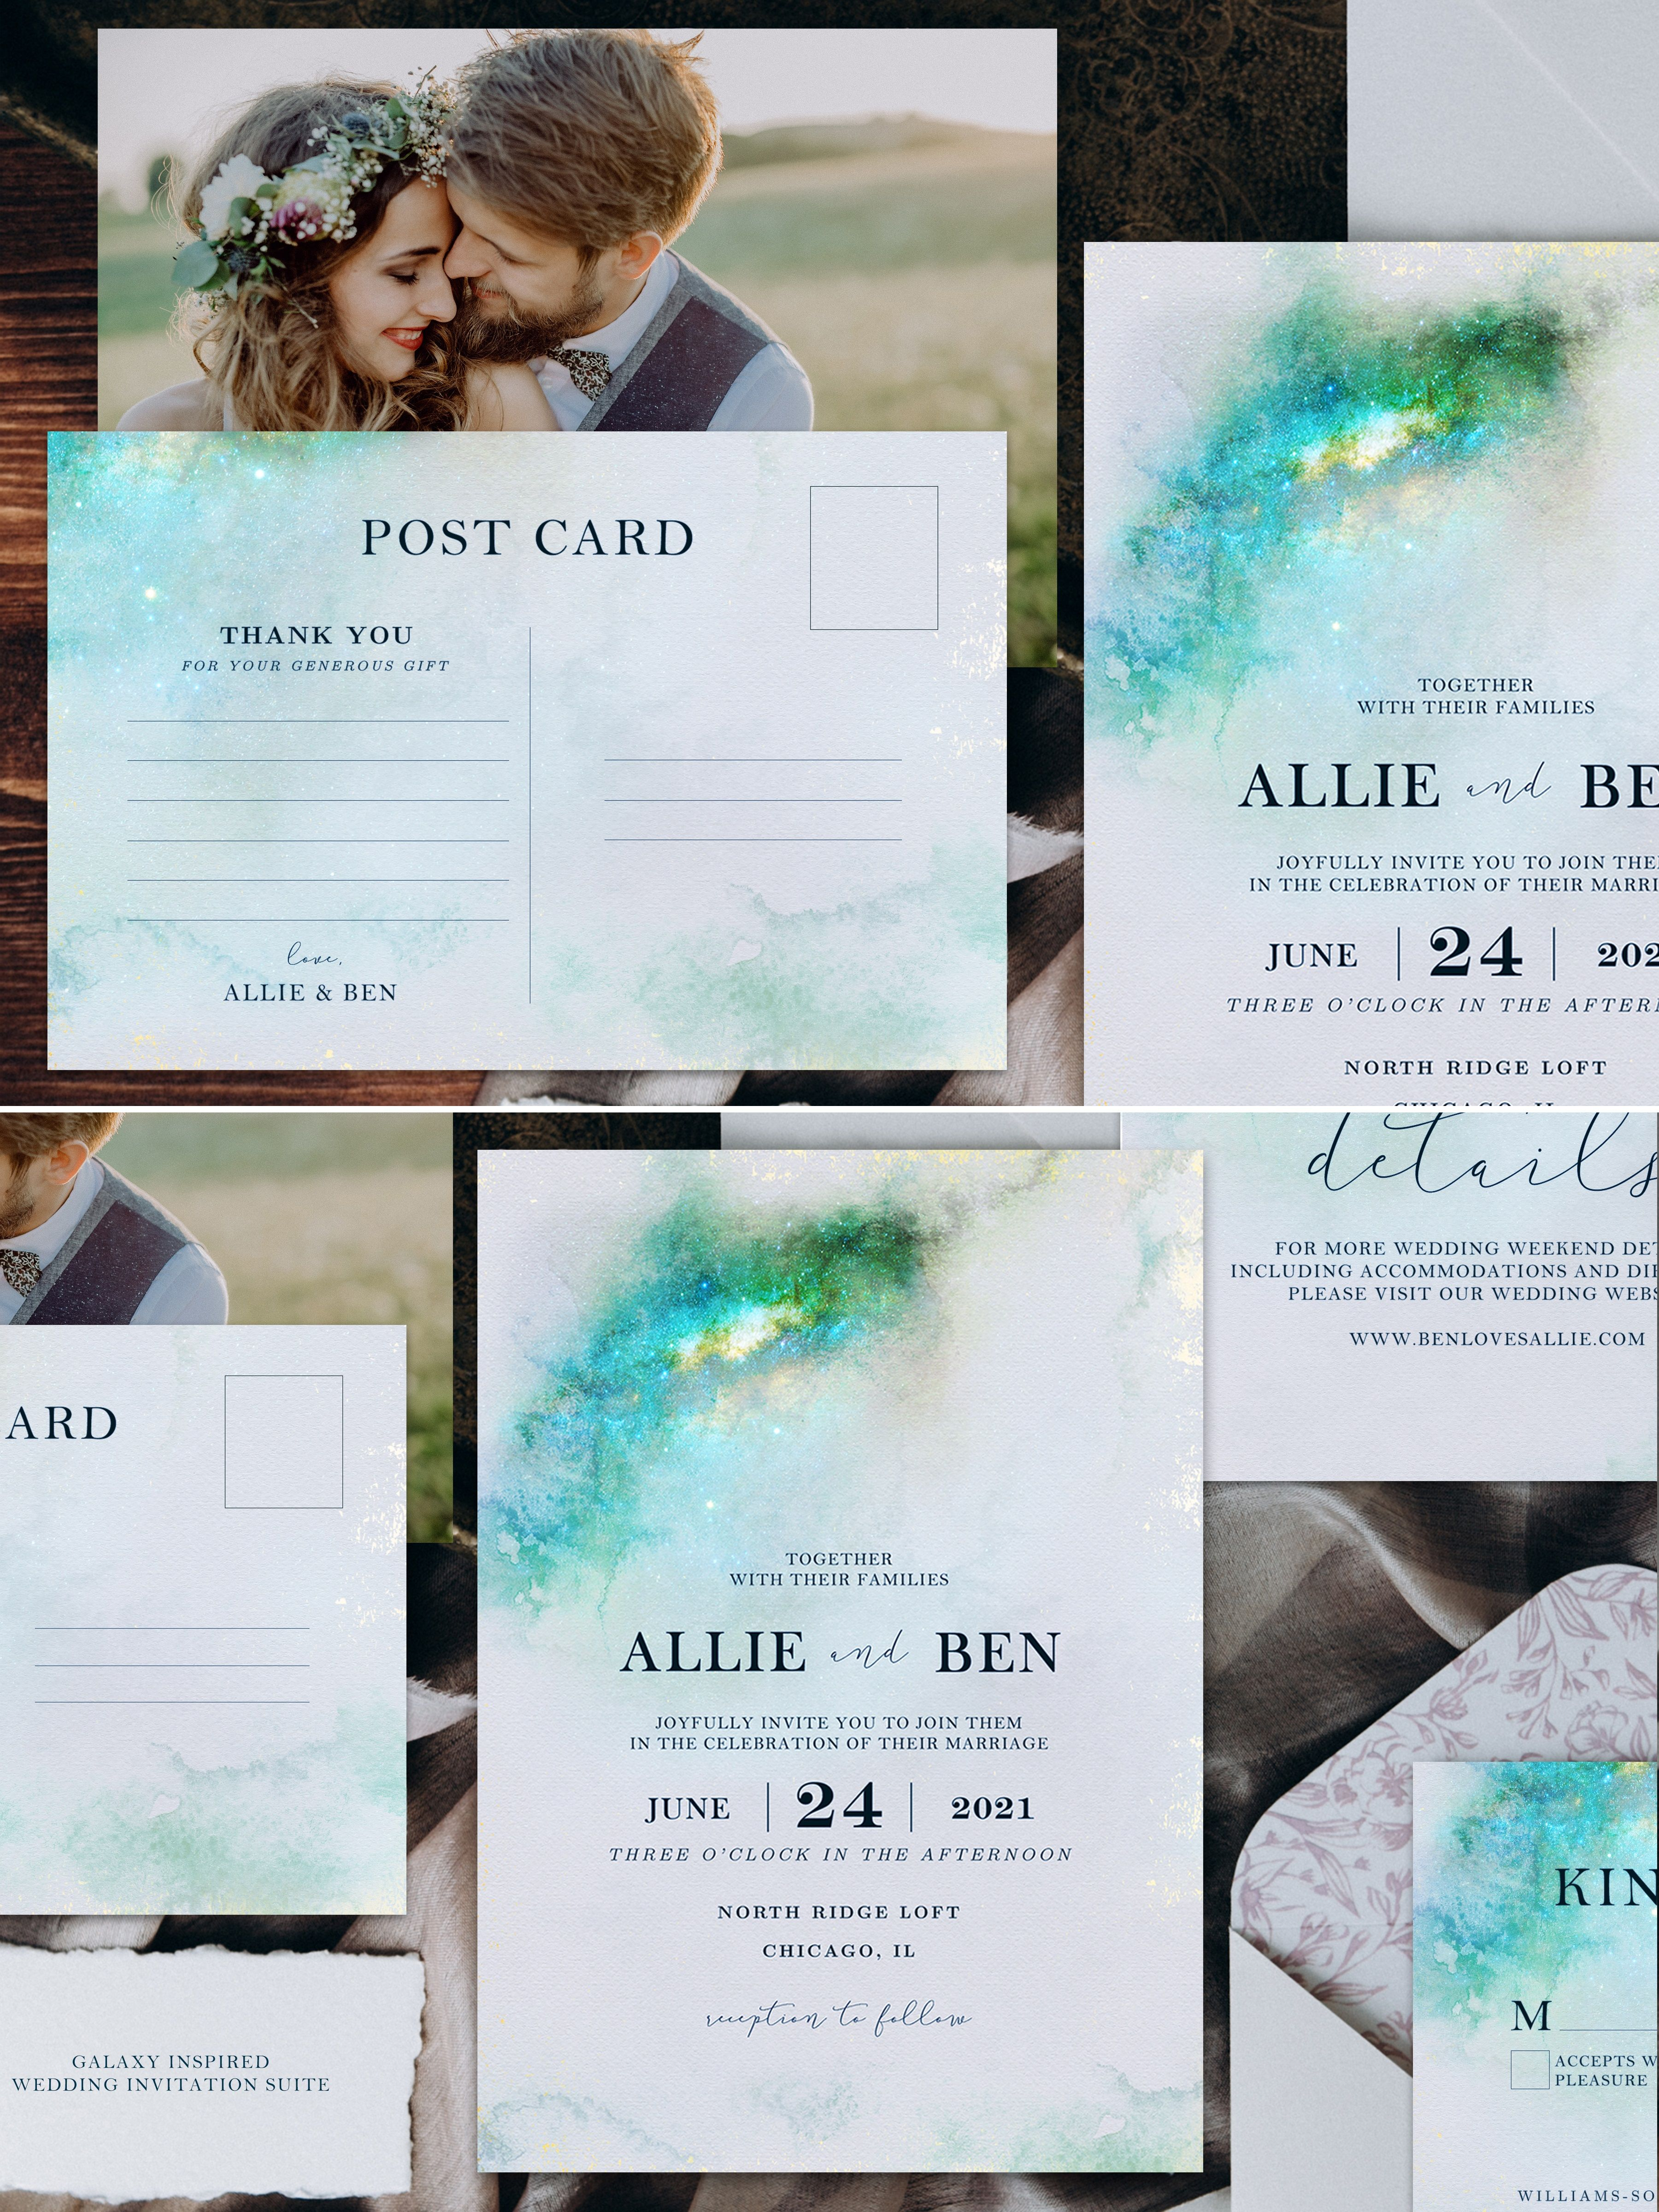 Galaxy Inspired Wedding Invitation Suite (Printable) | Invitation ...